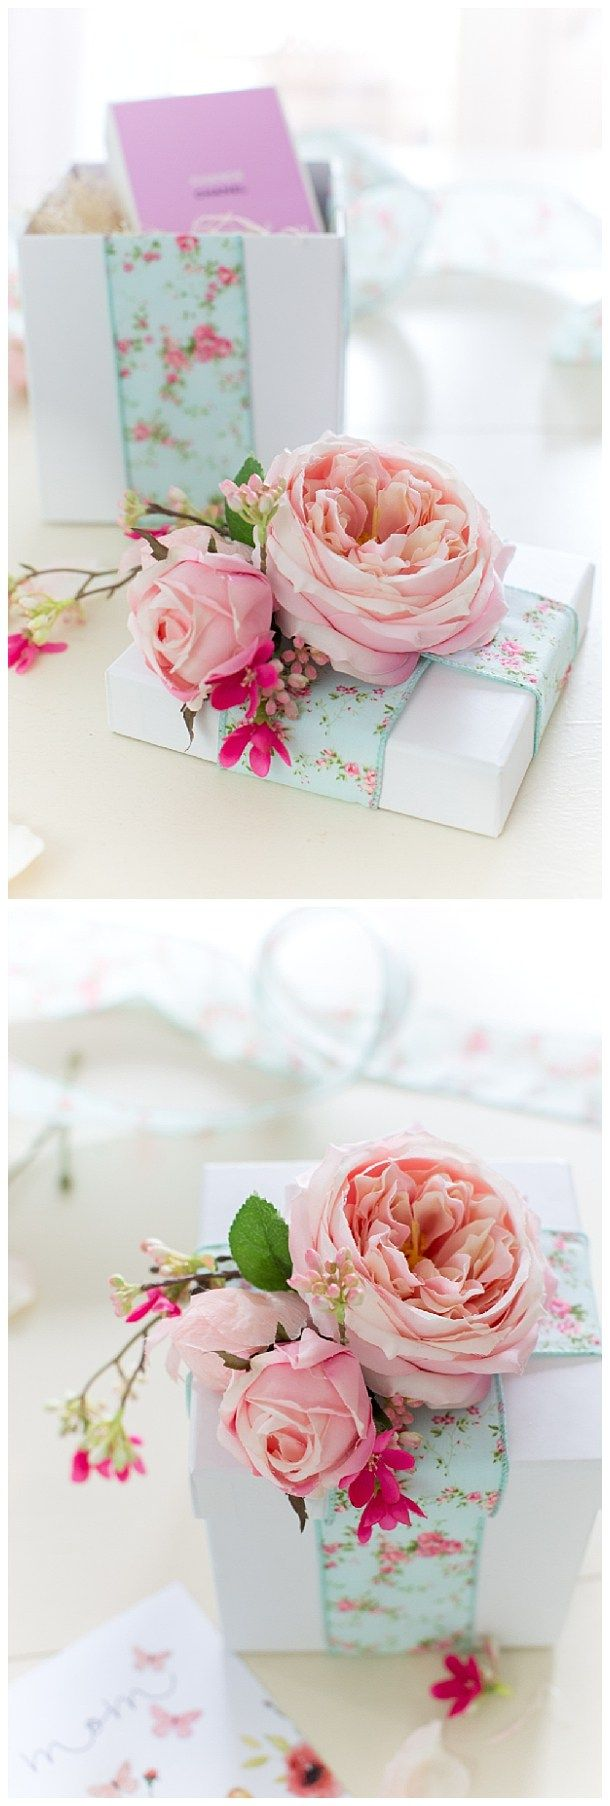 Vintage Floral Ribbon and Watercolor Hues Floral Gift Toppers via Craftberry Bush - The BEST DIY Gift Toppers - Pretty and EASY Inexpensive Handmade Ideas for Christmas, Birthdays, Mother's Day, Holidays and any special occasion!